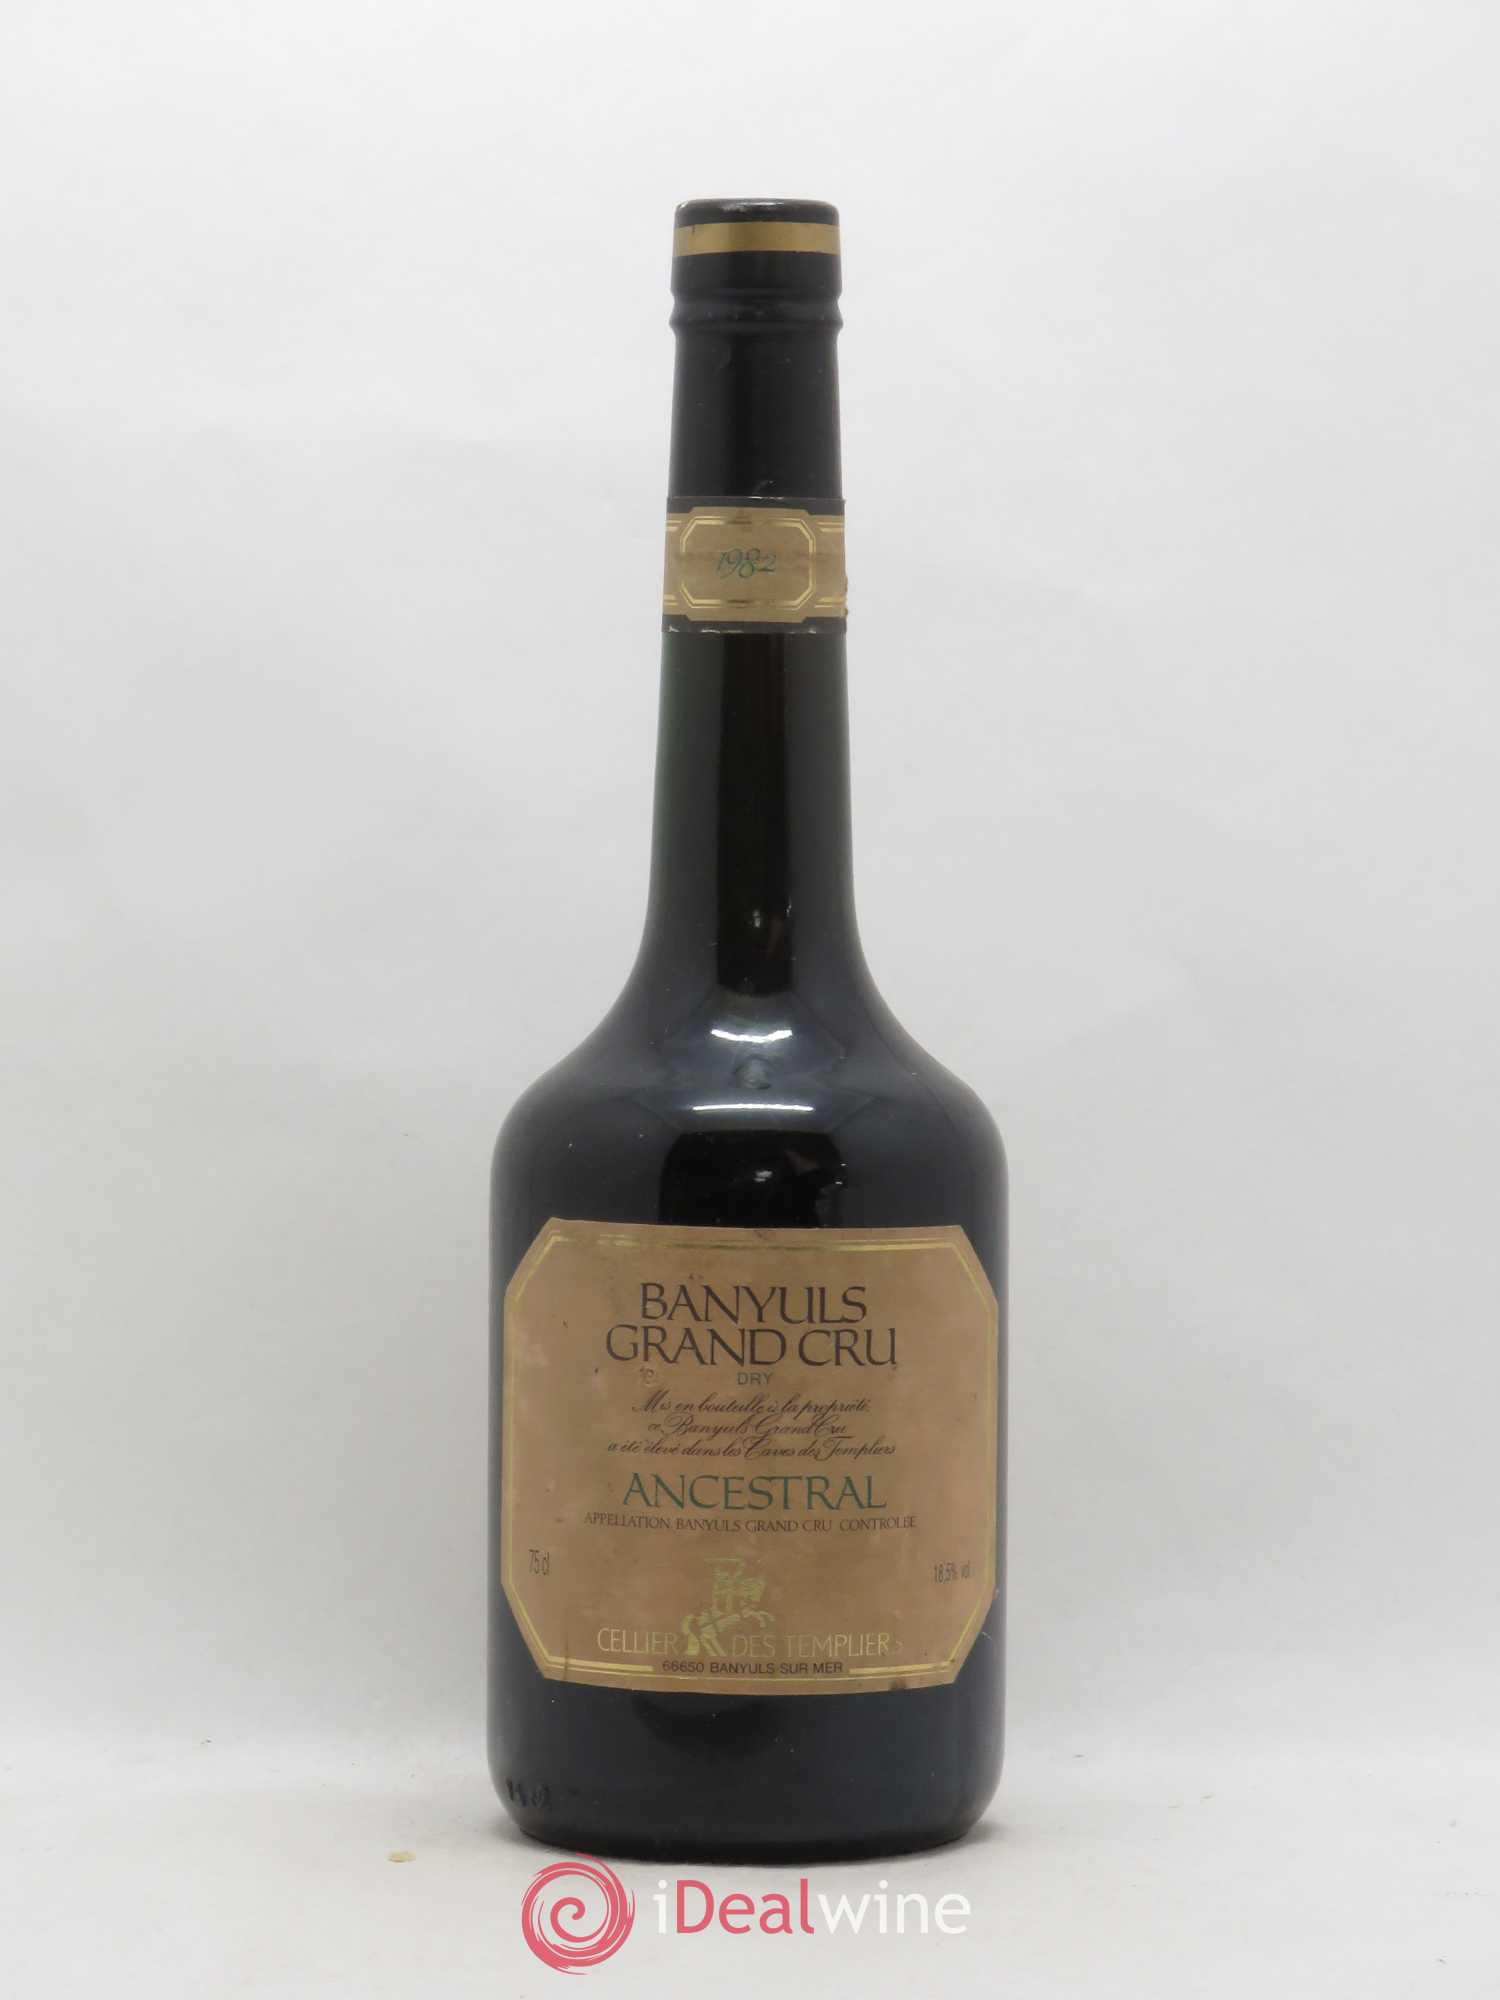 Banyuls Grand Cru Ancestral Cellier des Templiers